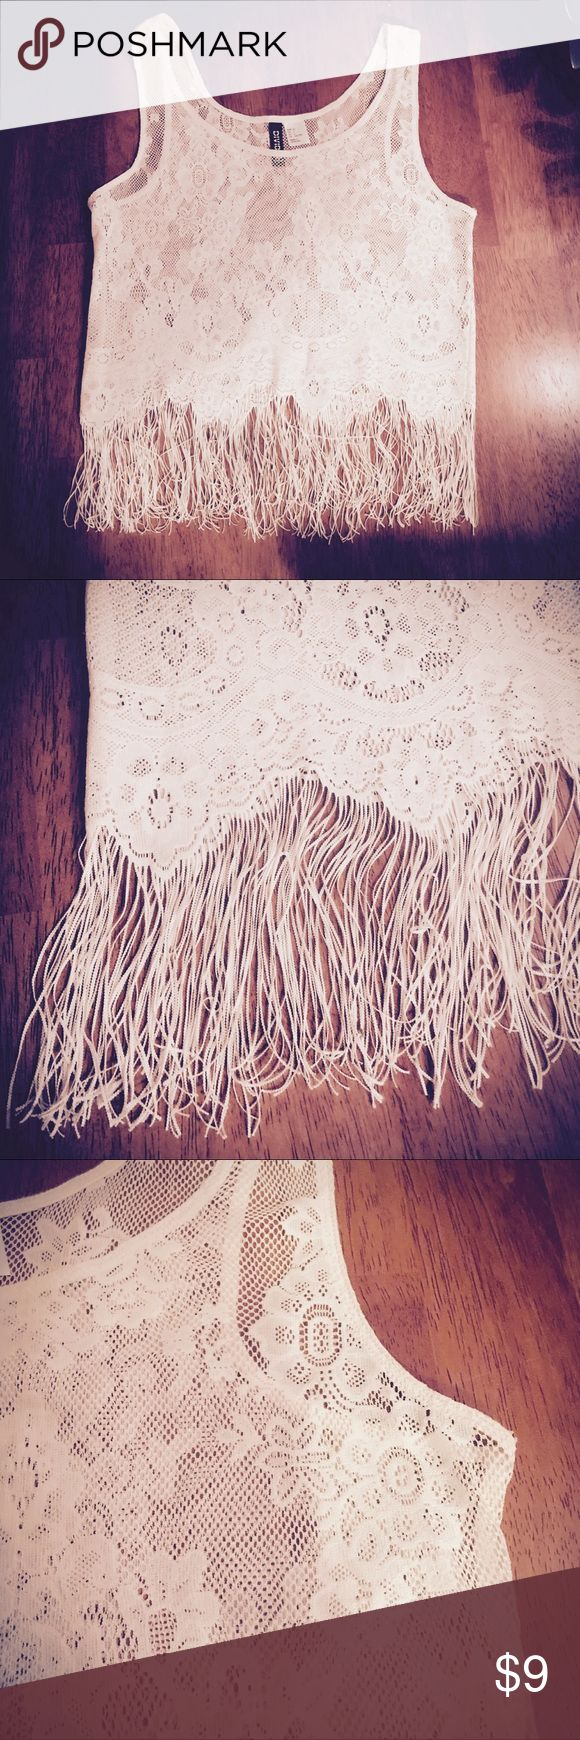 Lacy Boho Fringe Tank Top in Light Beige Lacy Boho Fringe Tank Top in Light Beige.  Such a fun festival style piece! Goes great paired with a bandeau, nude bra or tank under and jean shorts or at the beach over your swimsuit. H&M Tops Tank Tops